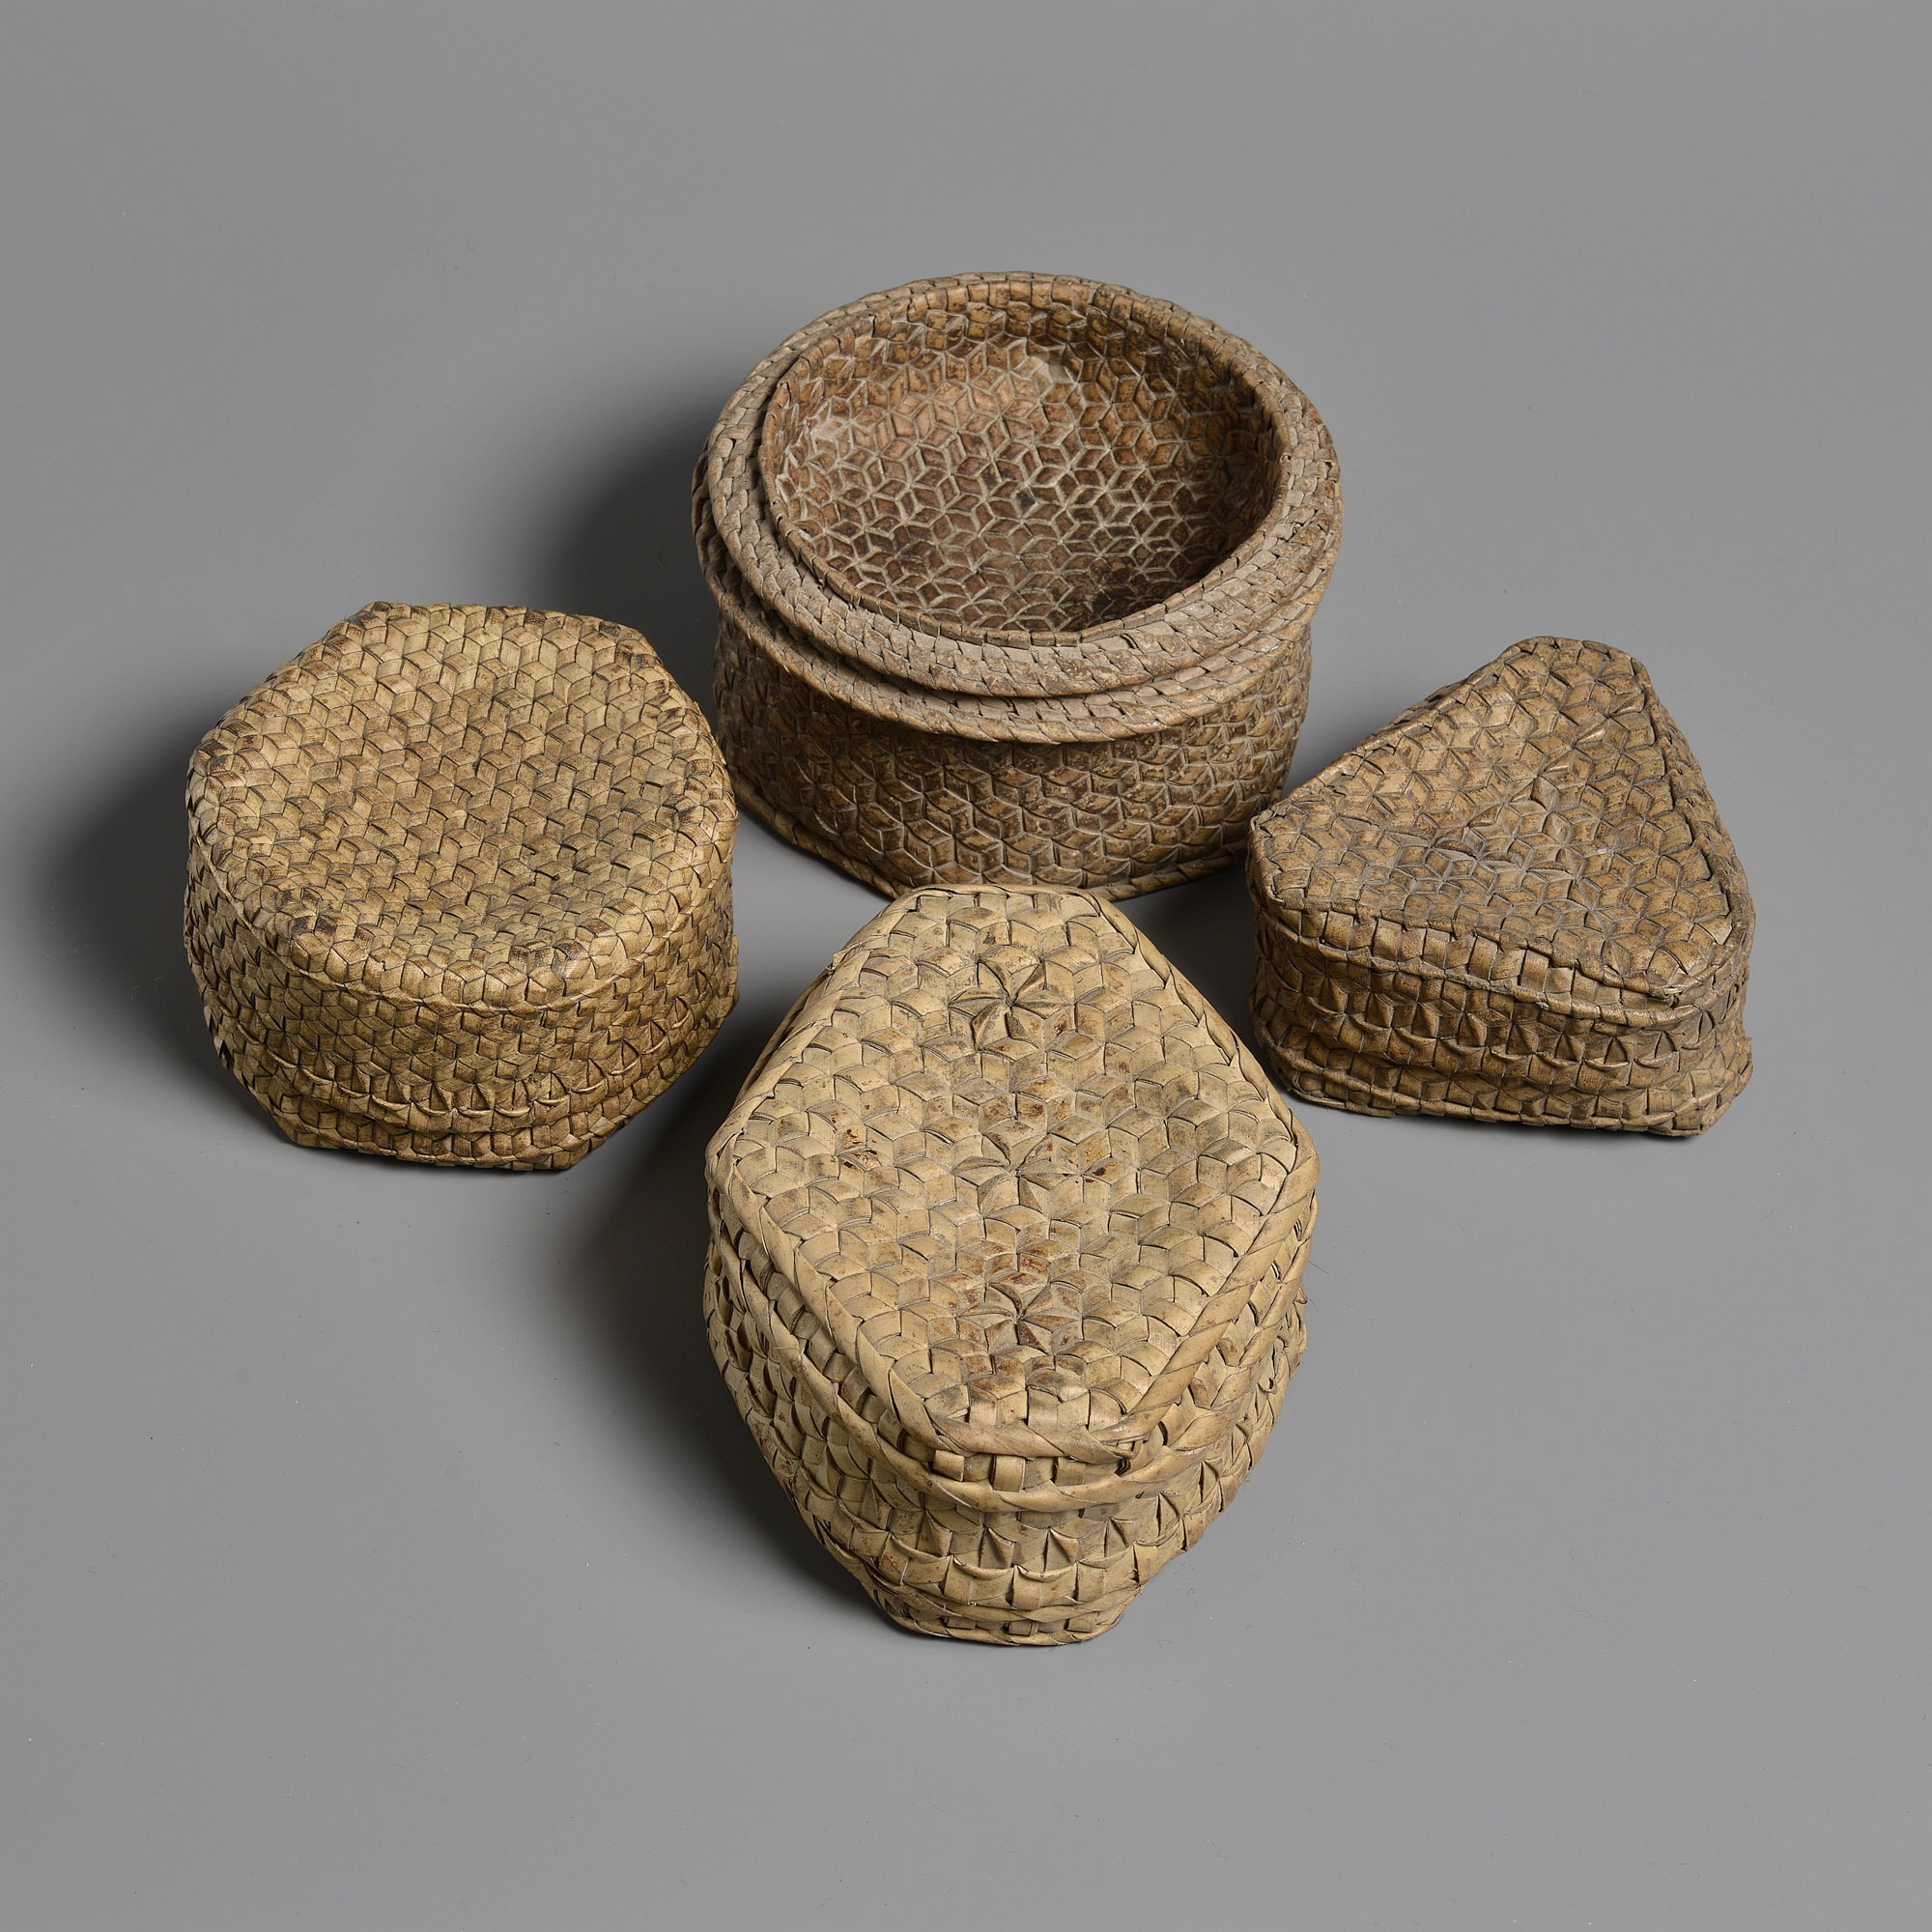 Timur Basketries.